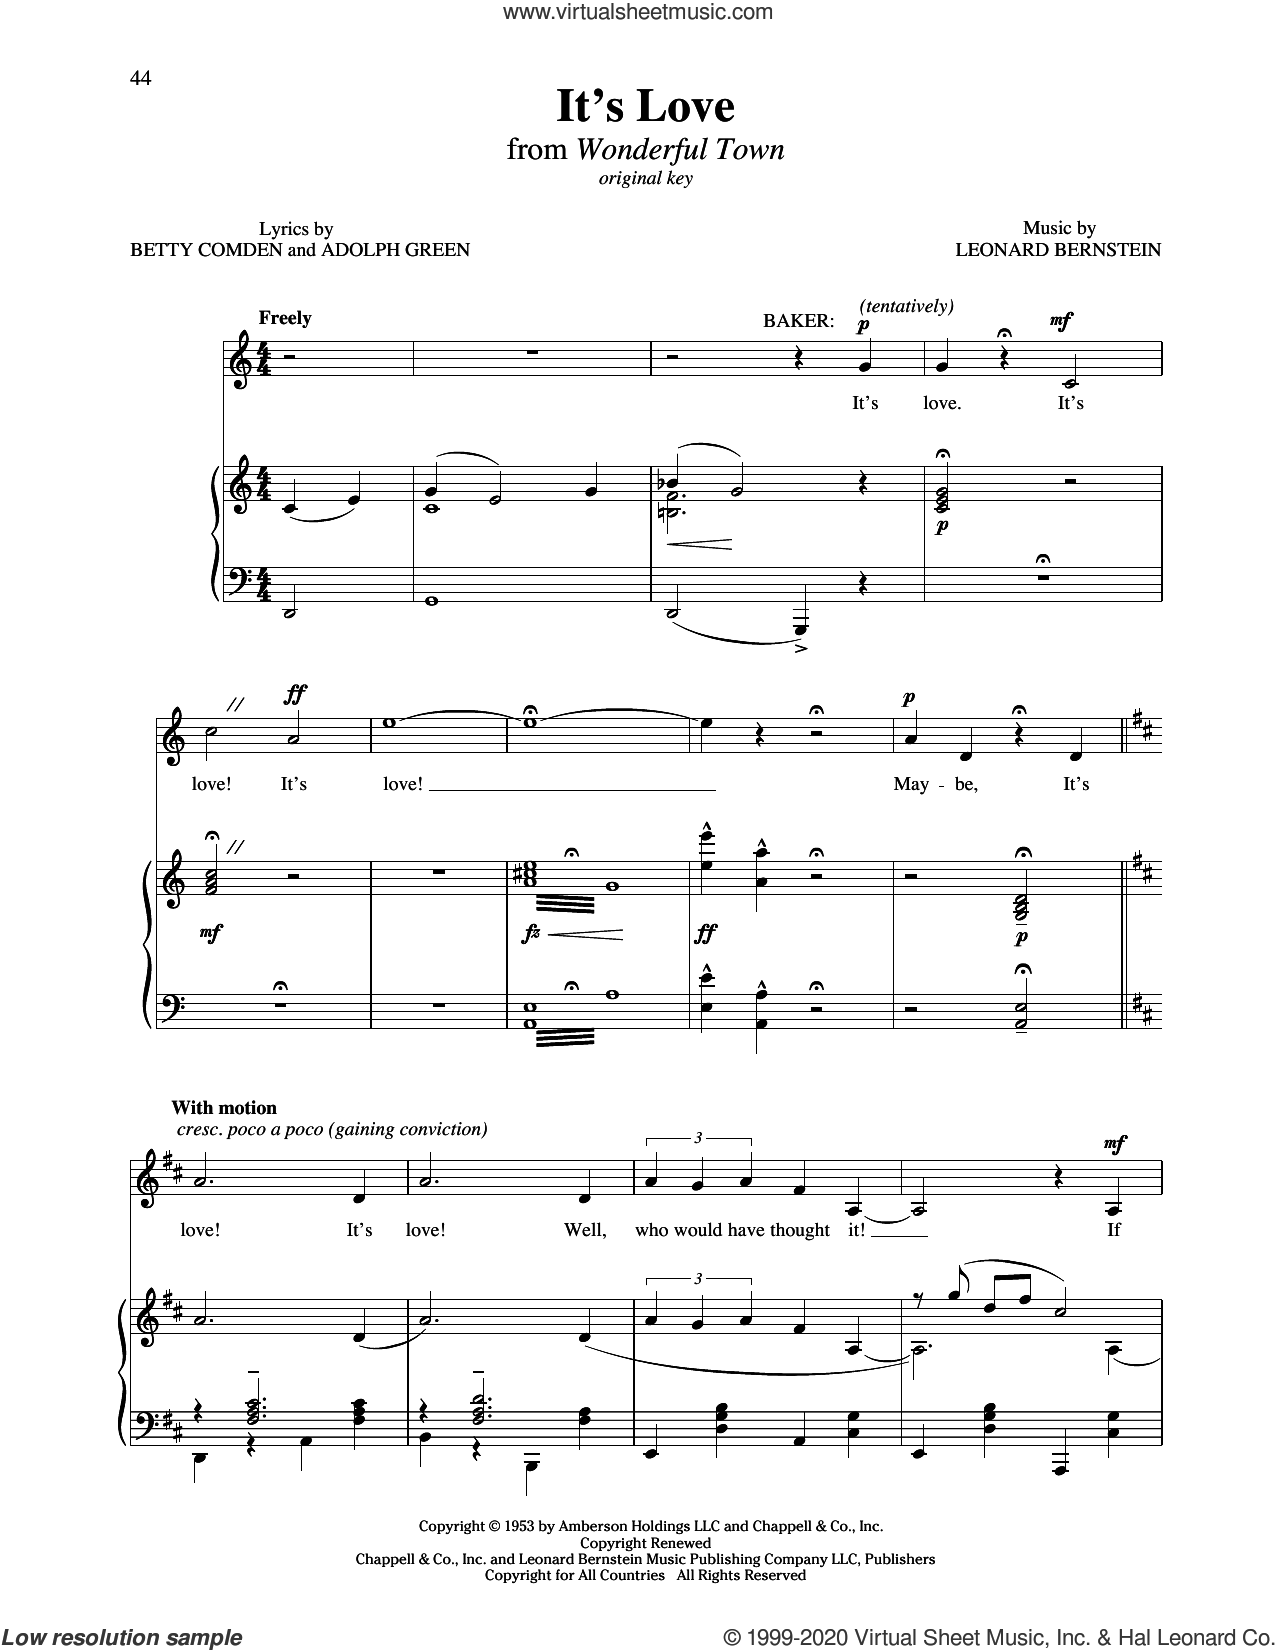 It's Love (from Wonderful Town) sheet music for voice and piano (Medium Low Voice) by Betty Comden, Richard Walters, Adolph Green and Leonard Bernstein, intermediate skill level